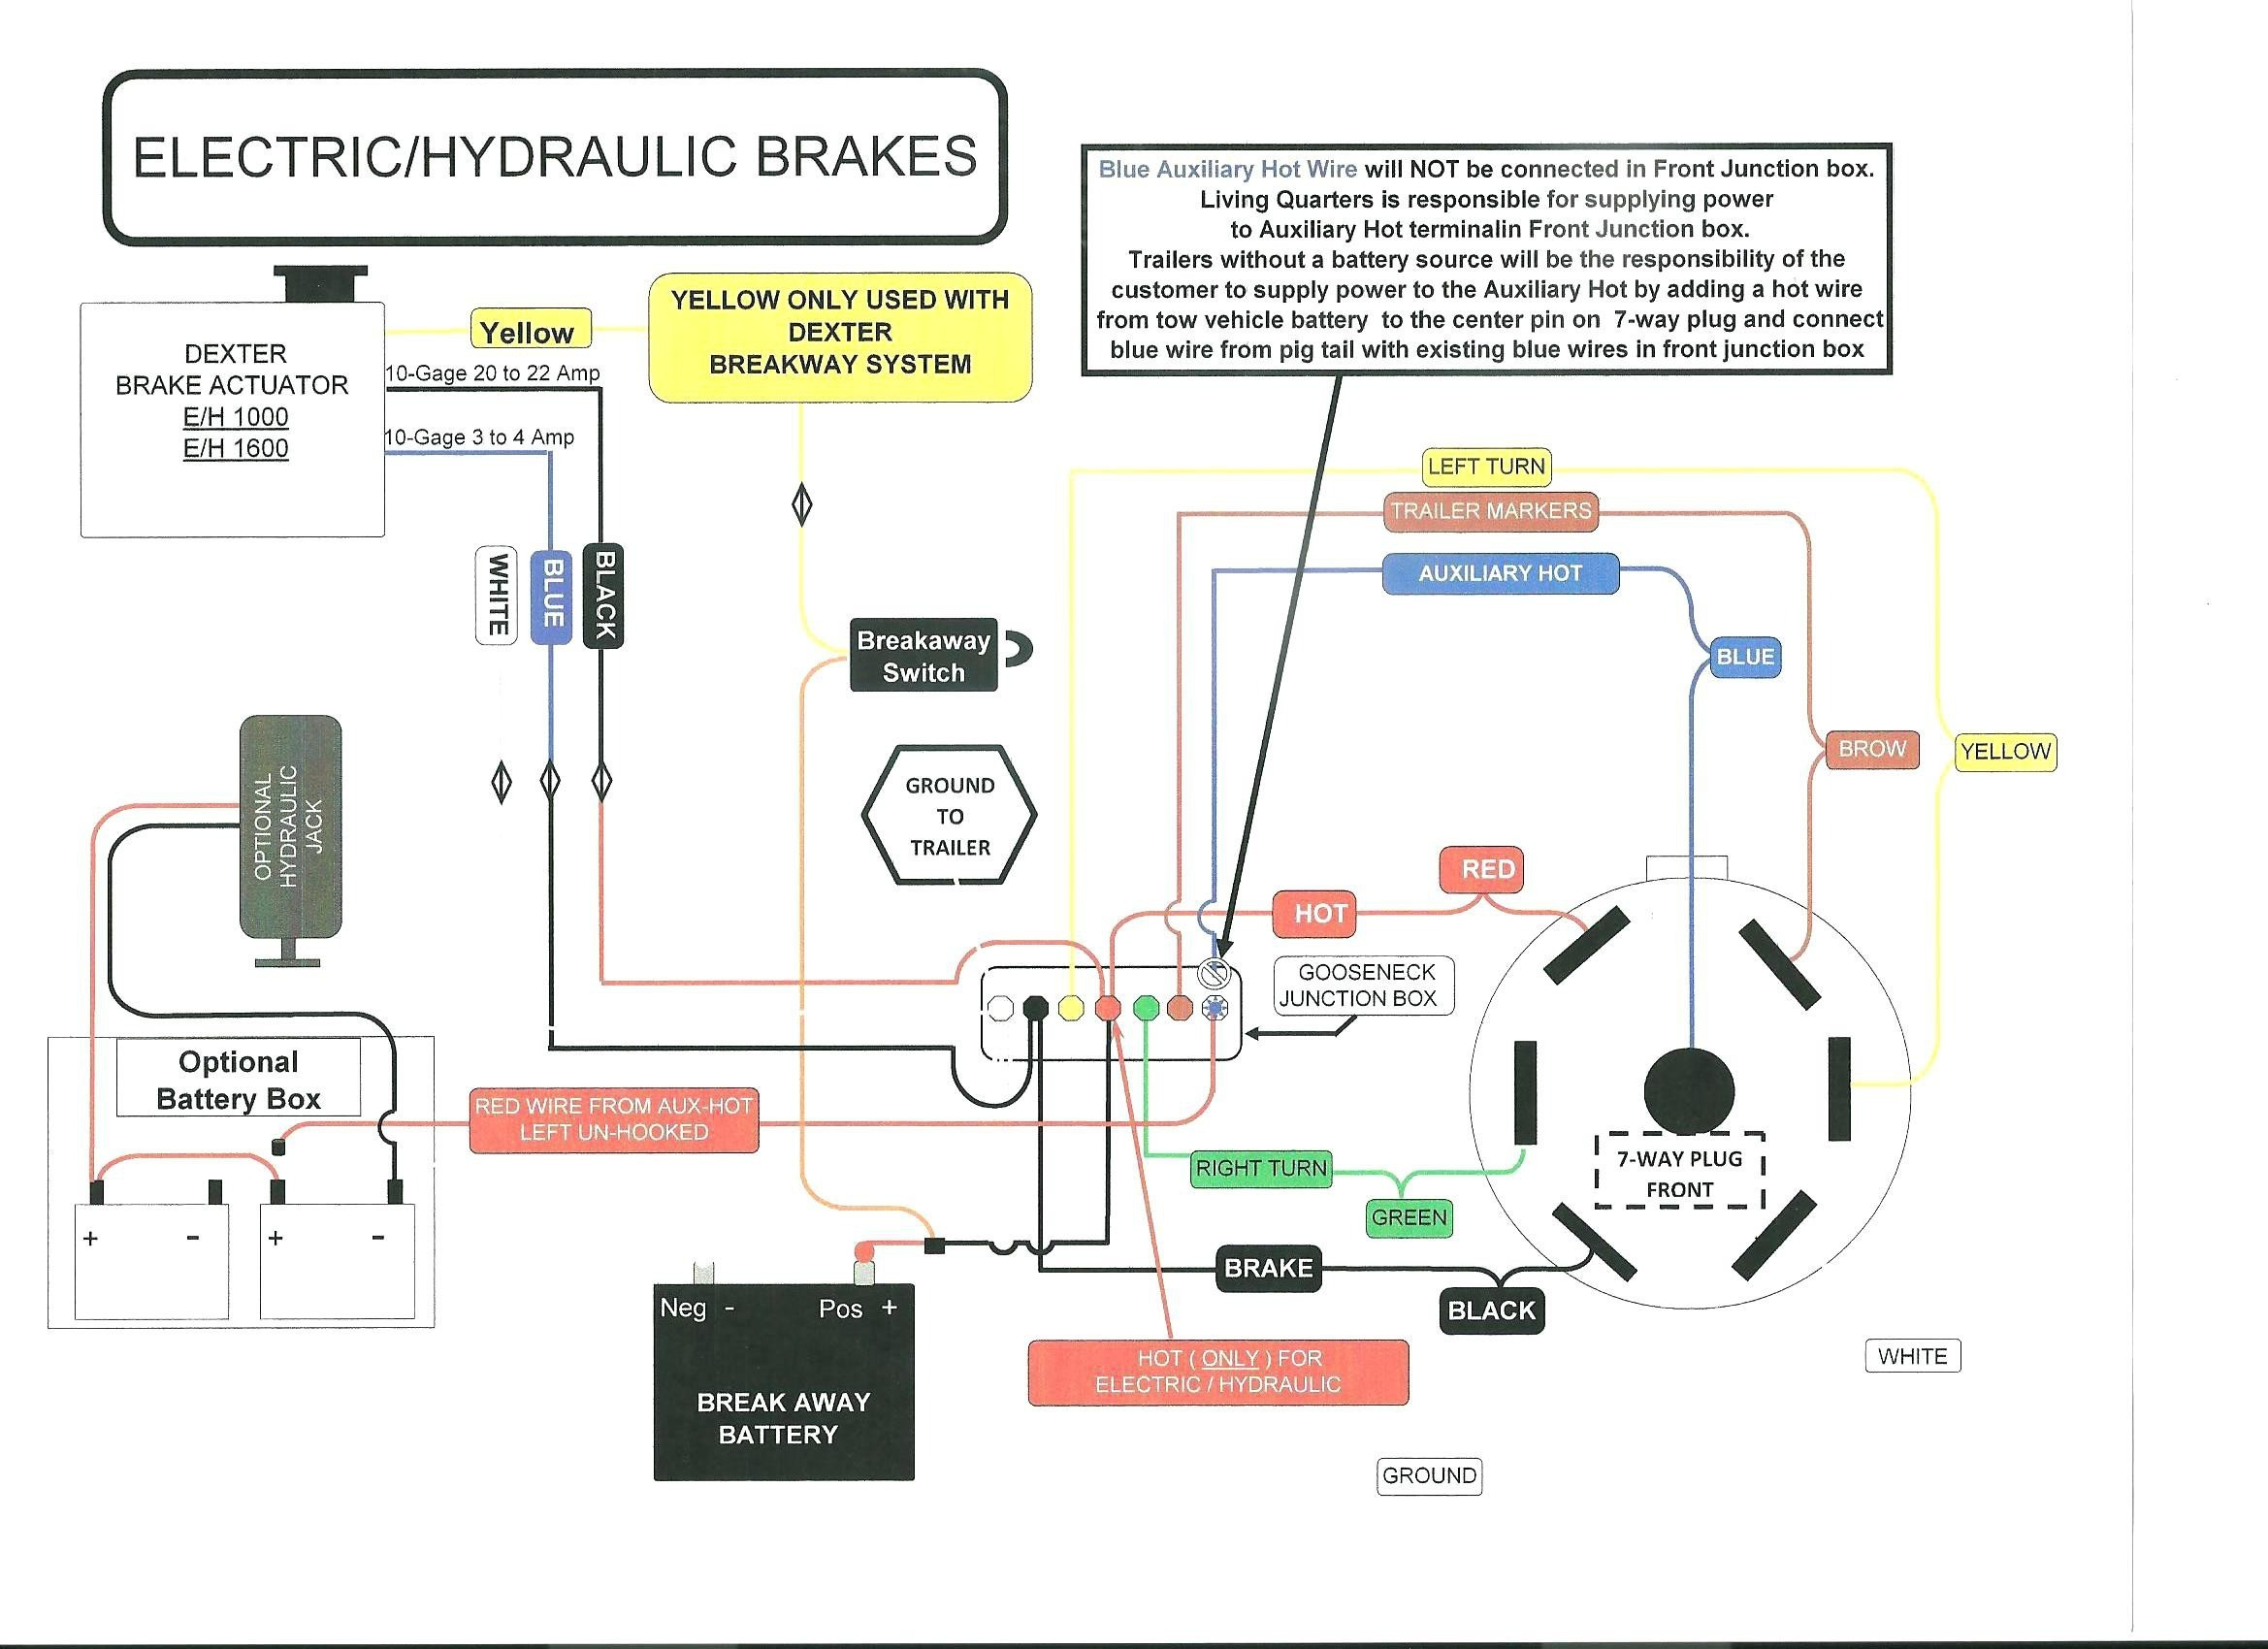 jayco trailer wiring diagram Collection-Travel Trailer Wiring Diagram Inspirational Wiring Diagram for Stock Jayco Electric Brakes Wiring Awesome Rv 2-e